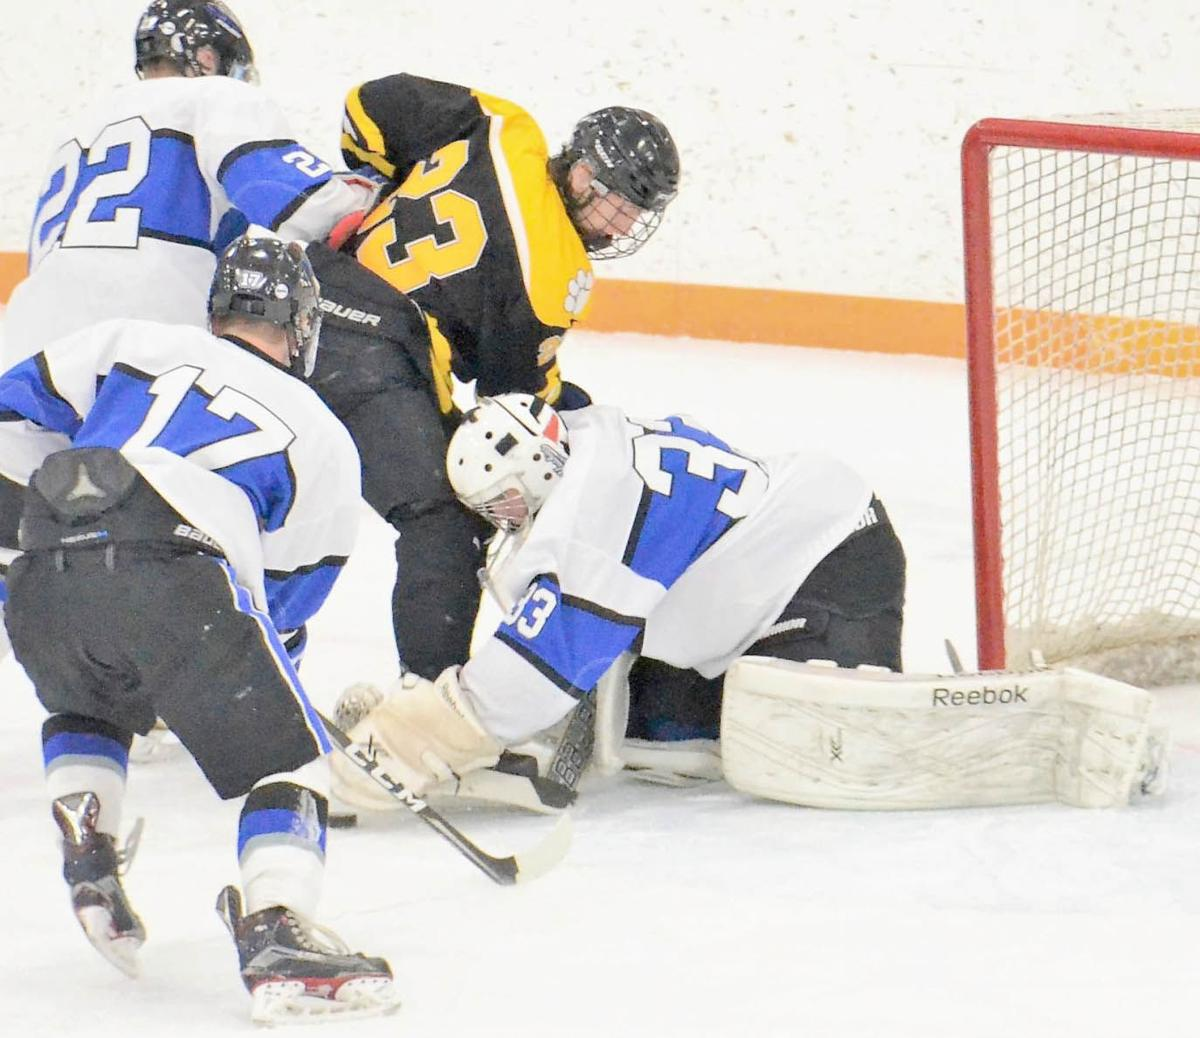 Zach Wiese selected to play in Final 54 spring hockey festival